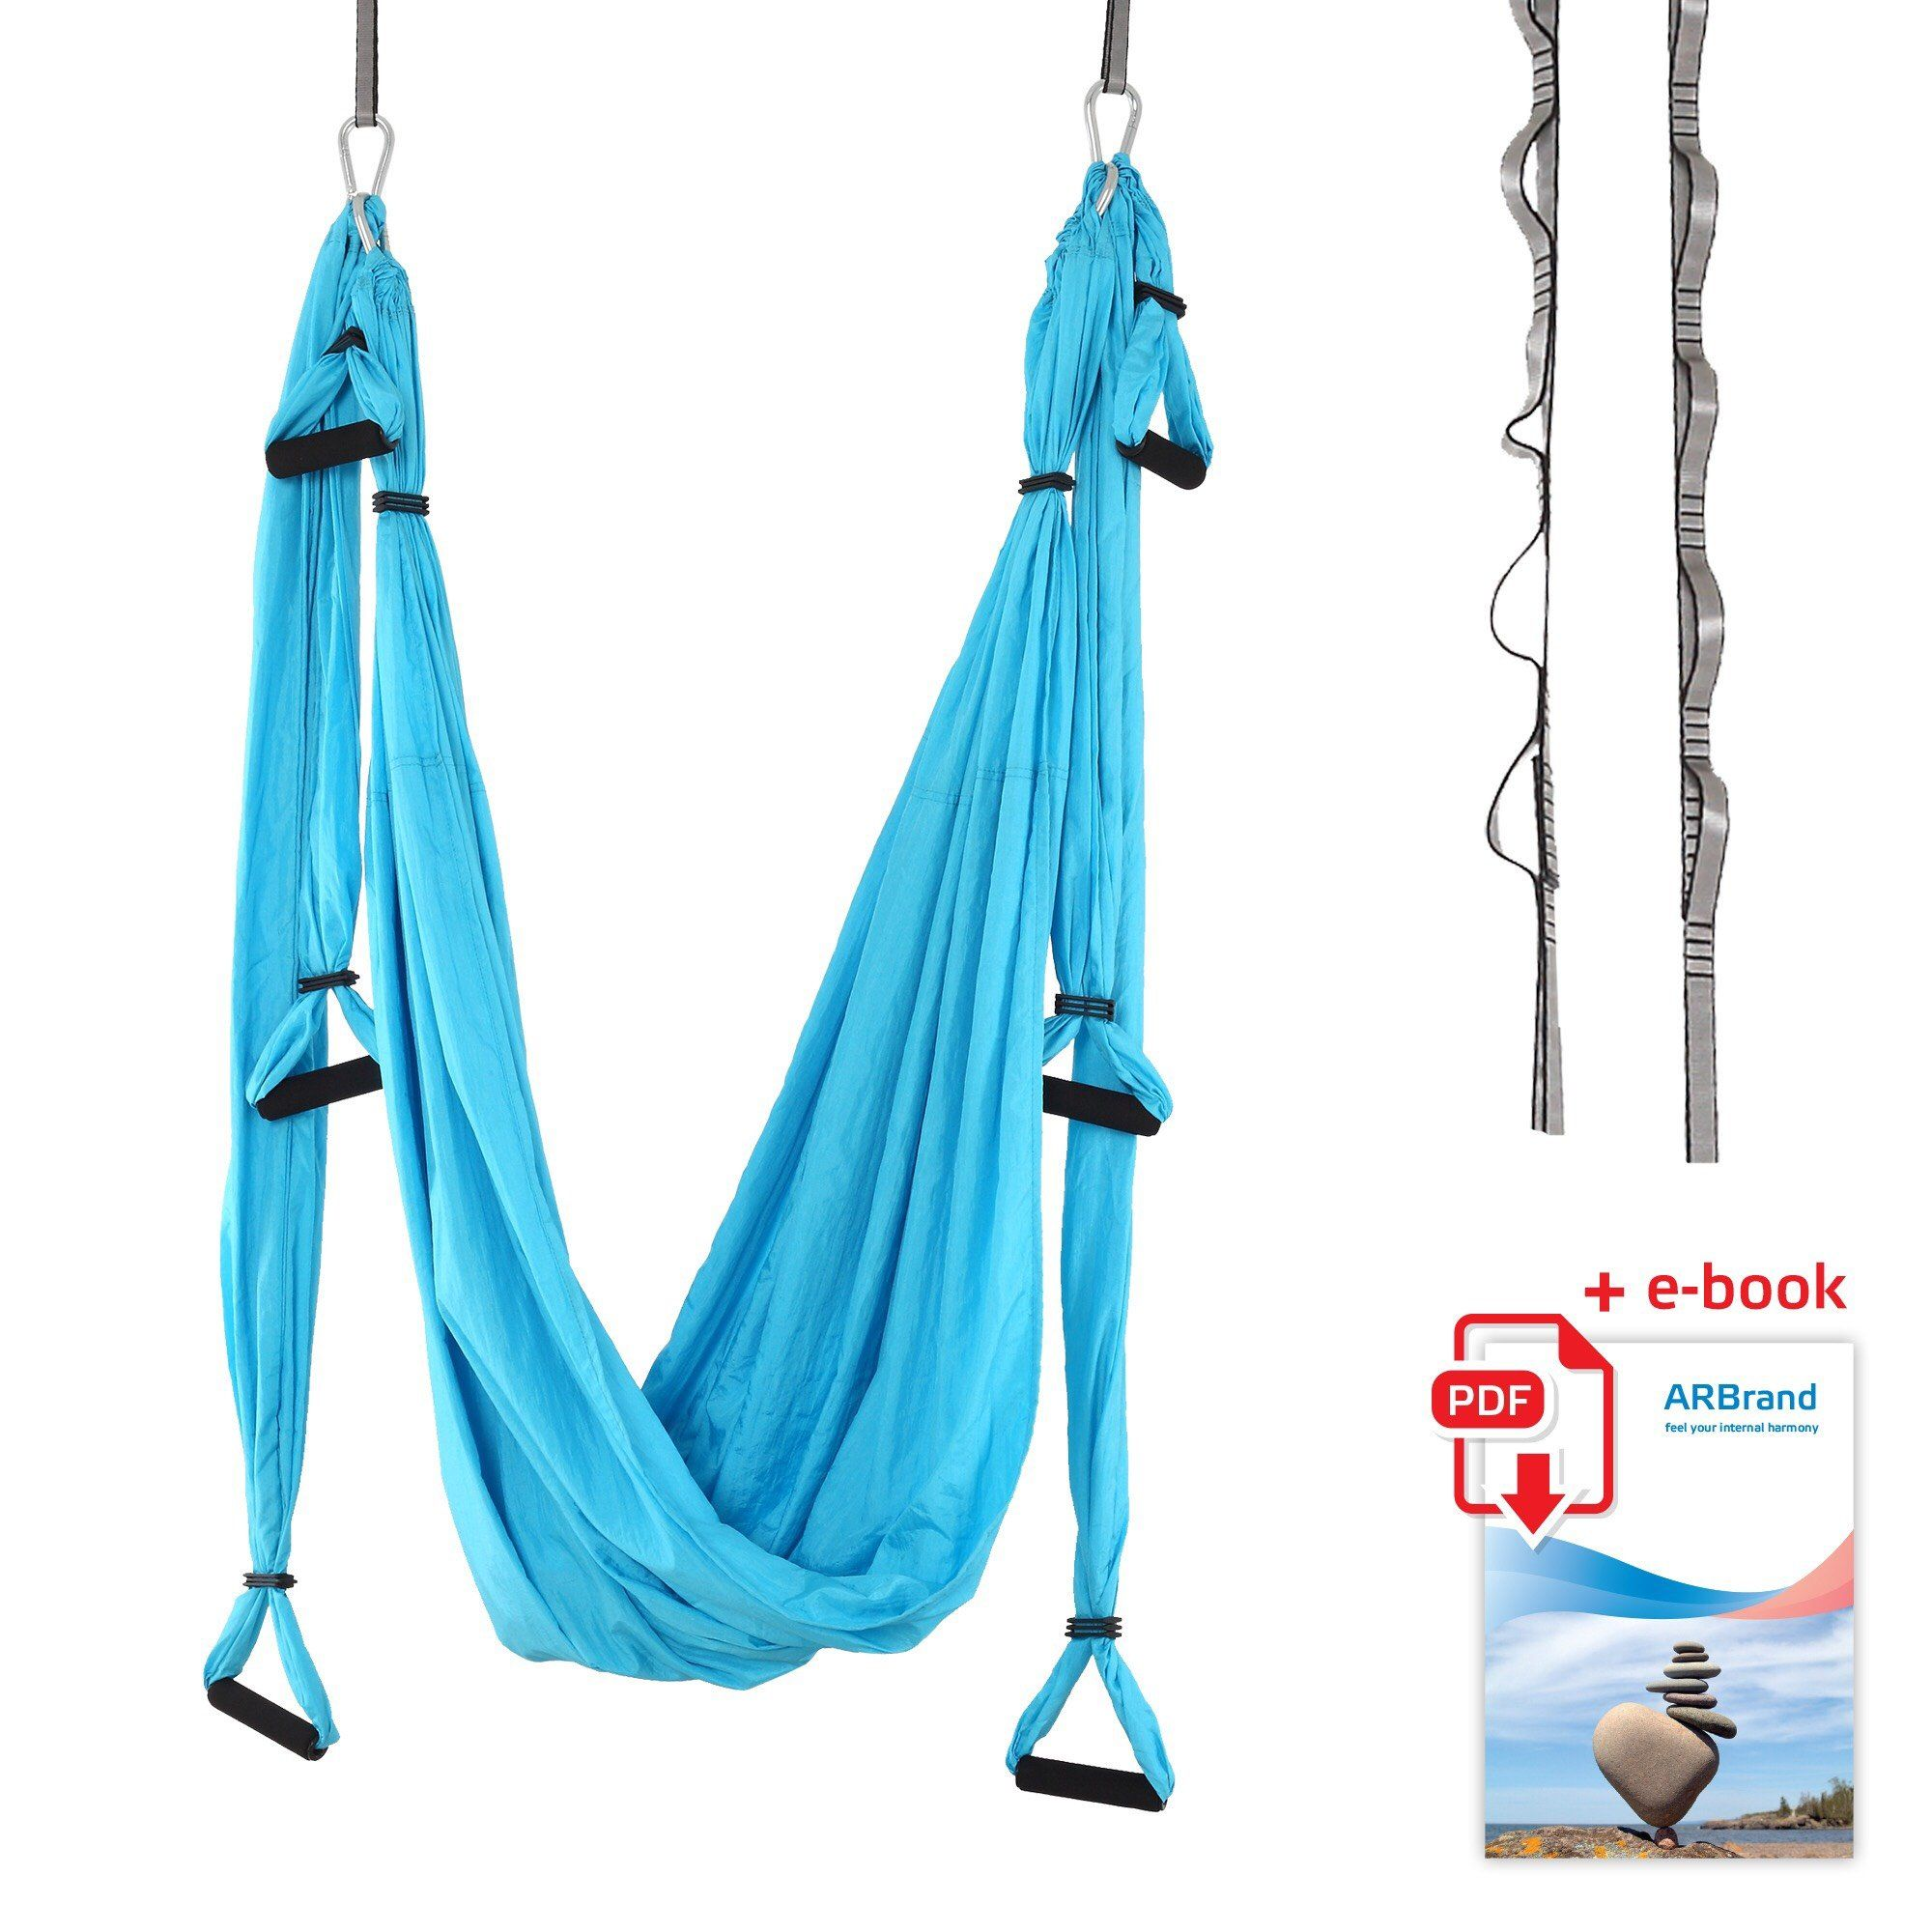 aerial yoga swing   antigravity yoga hammock trapeze sling inversion tool for back pain relief   2 hanging straps 4 heavy duty carabiners 6 eva handles     aerial yoga swing   antigravity yoga hammock trapeze sling      rh   pinterest